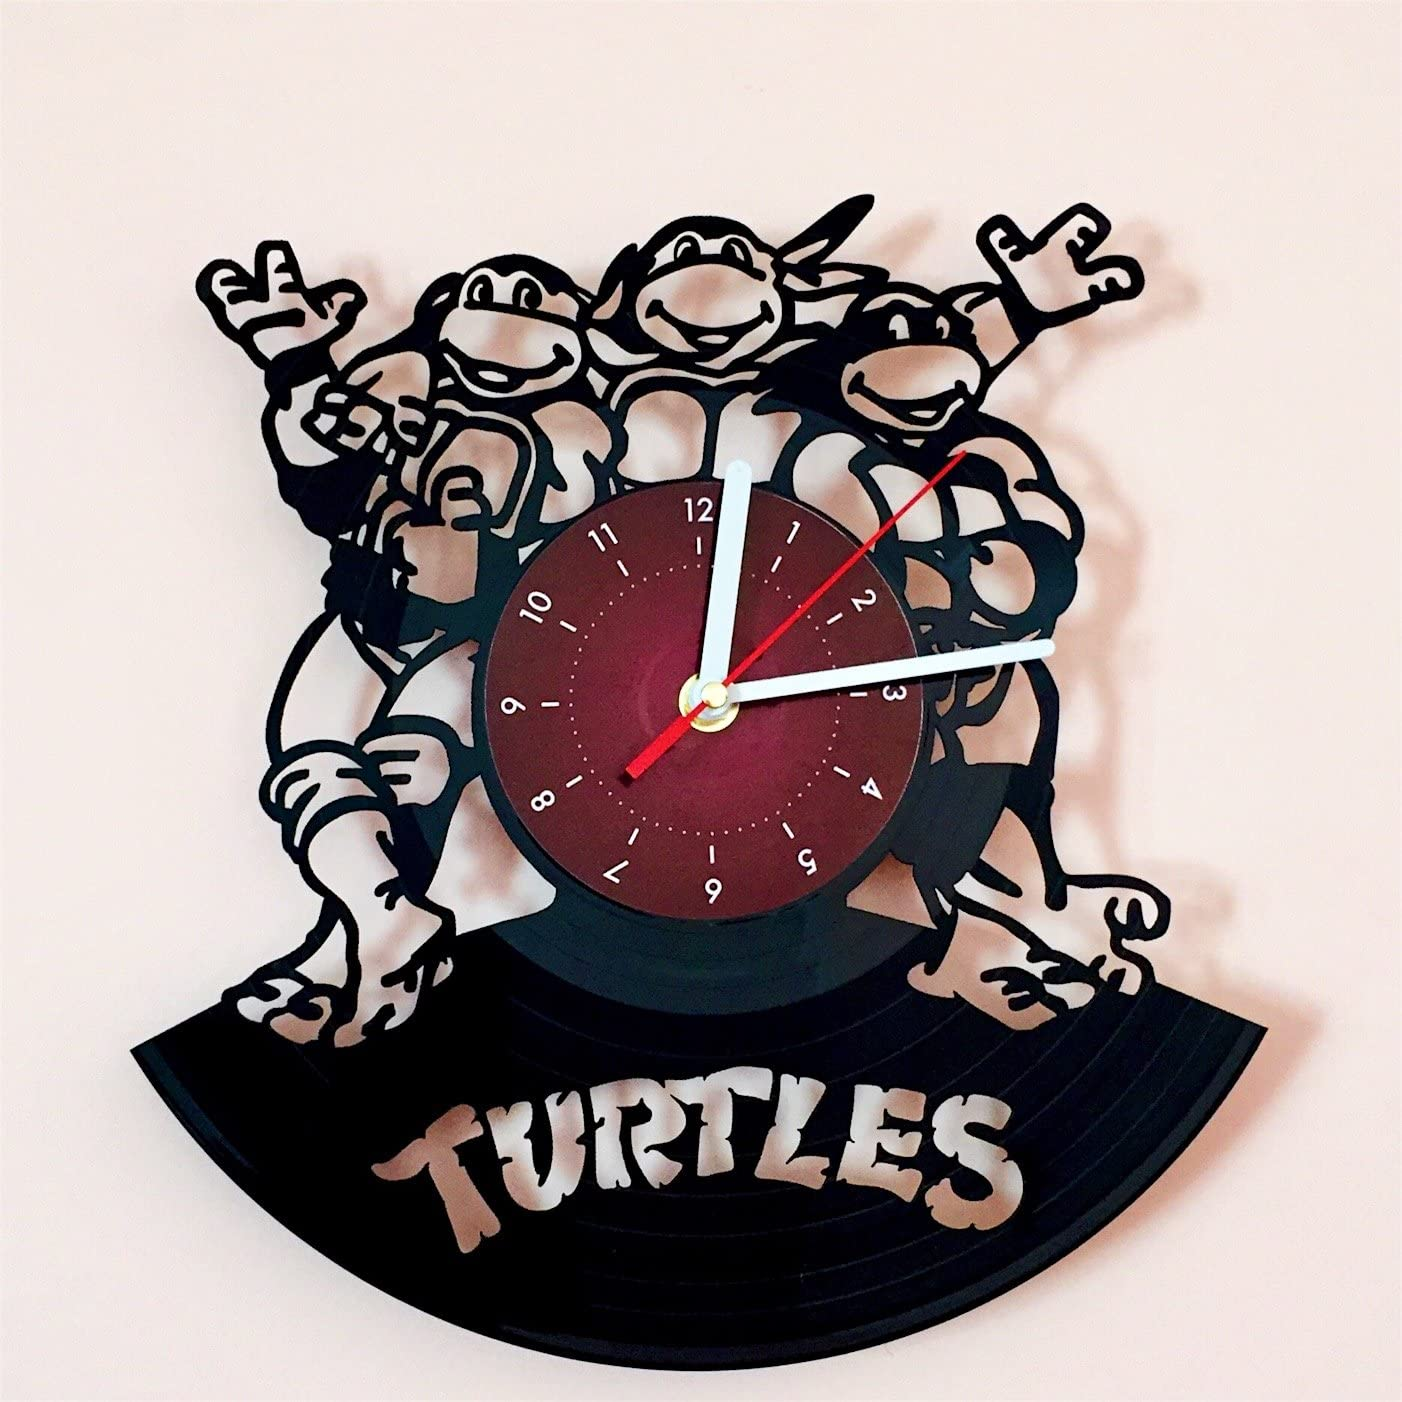 My Store For You Teenage Mutant Ninja Turtles Vinyl Record Wall Clock Kids Room Wall Decor Gift Ideas For Children Baby Brother And Sister Him And Her Amazon Ca Home